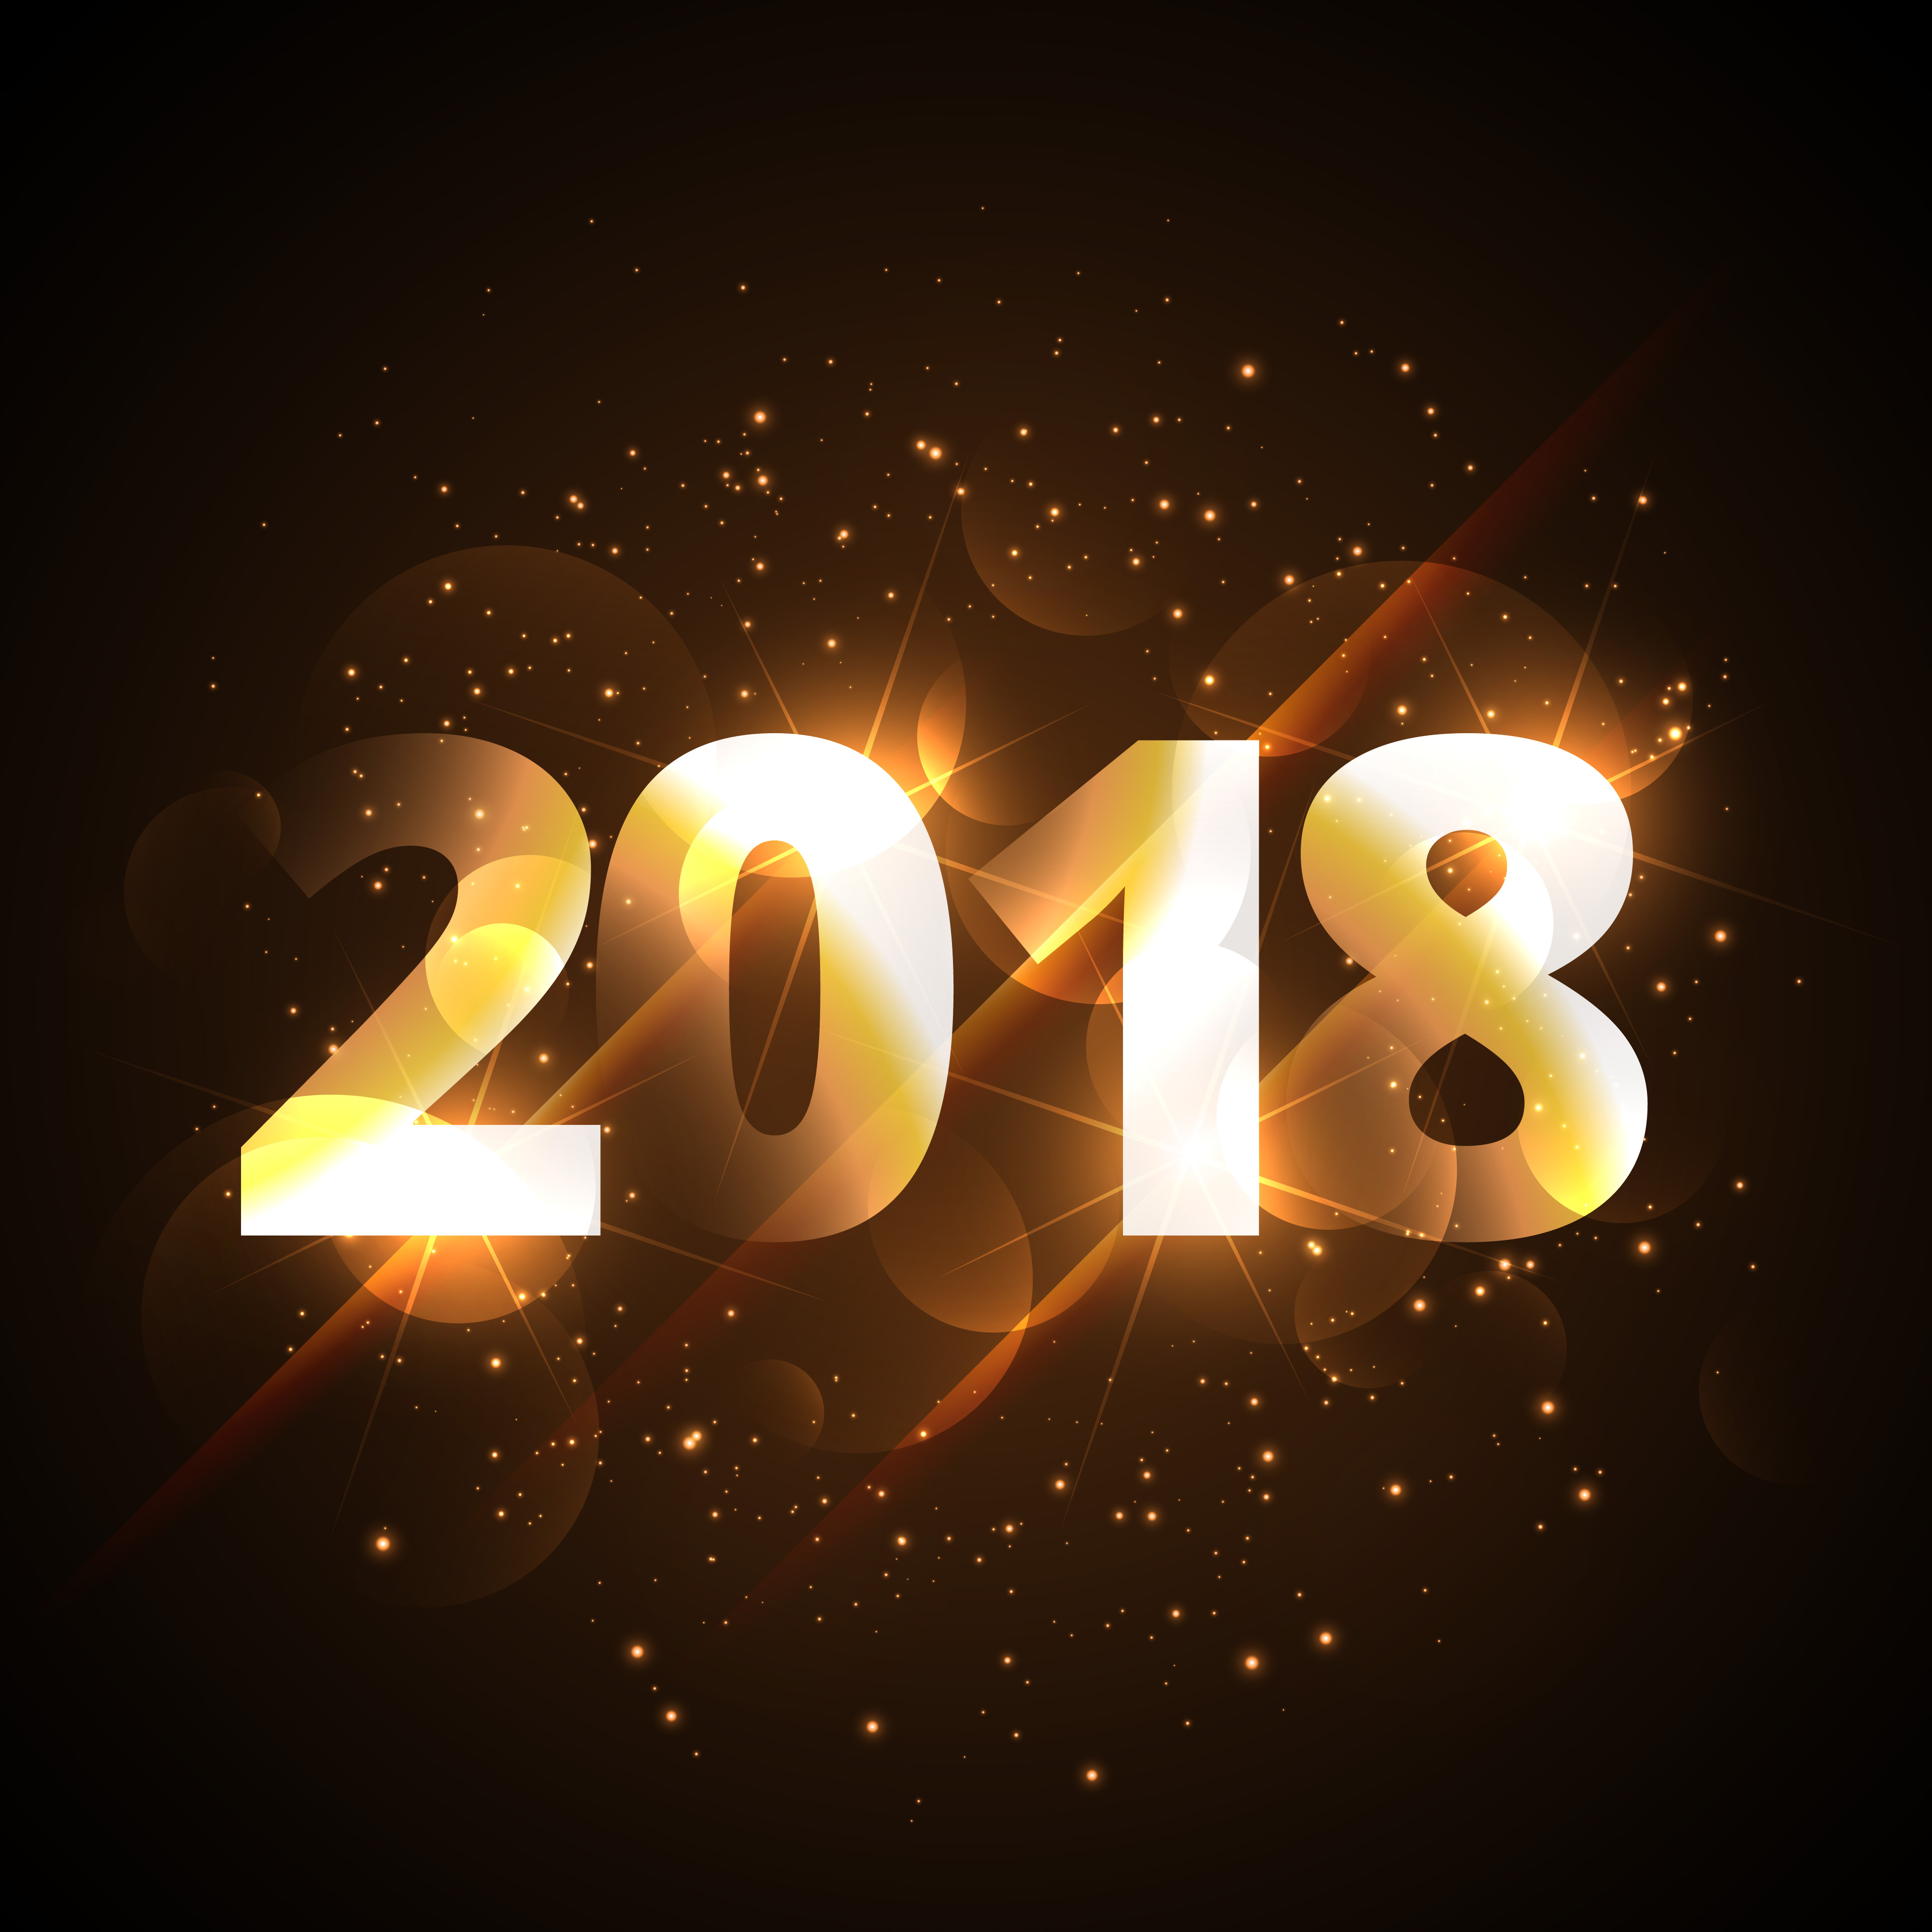 creative shiny happy new year 2018 golden background with sparkl download free vector art stock graphics images